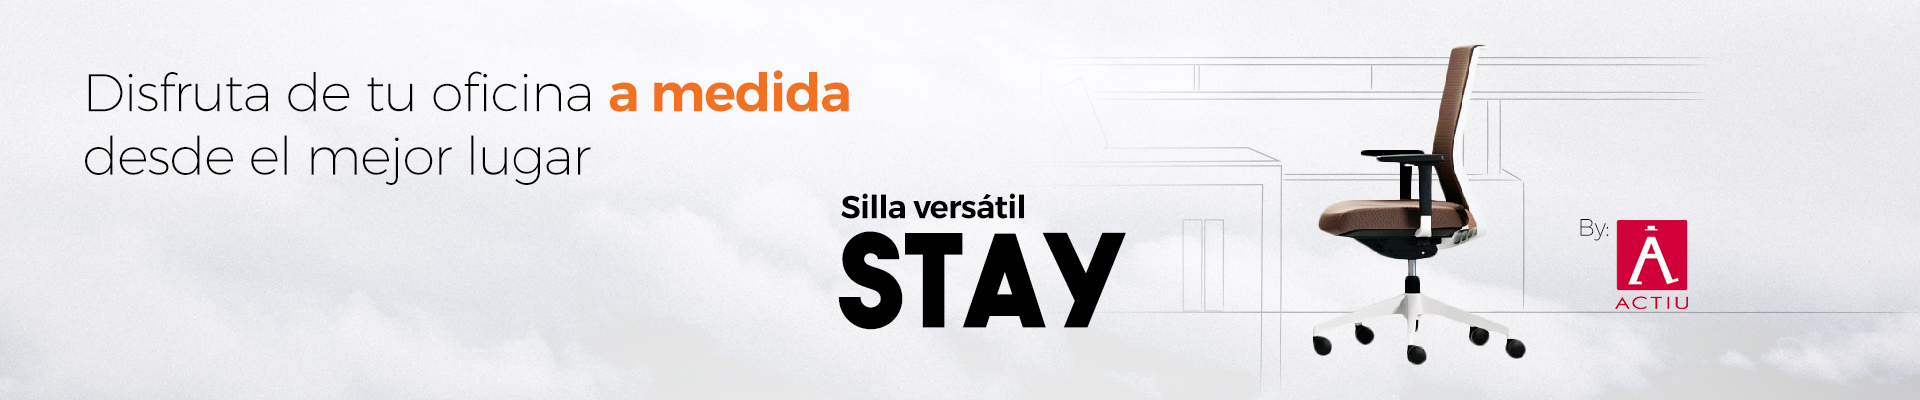 banner-stay-silla-opt